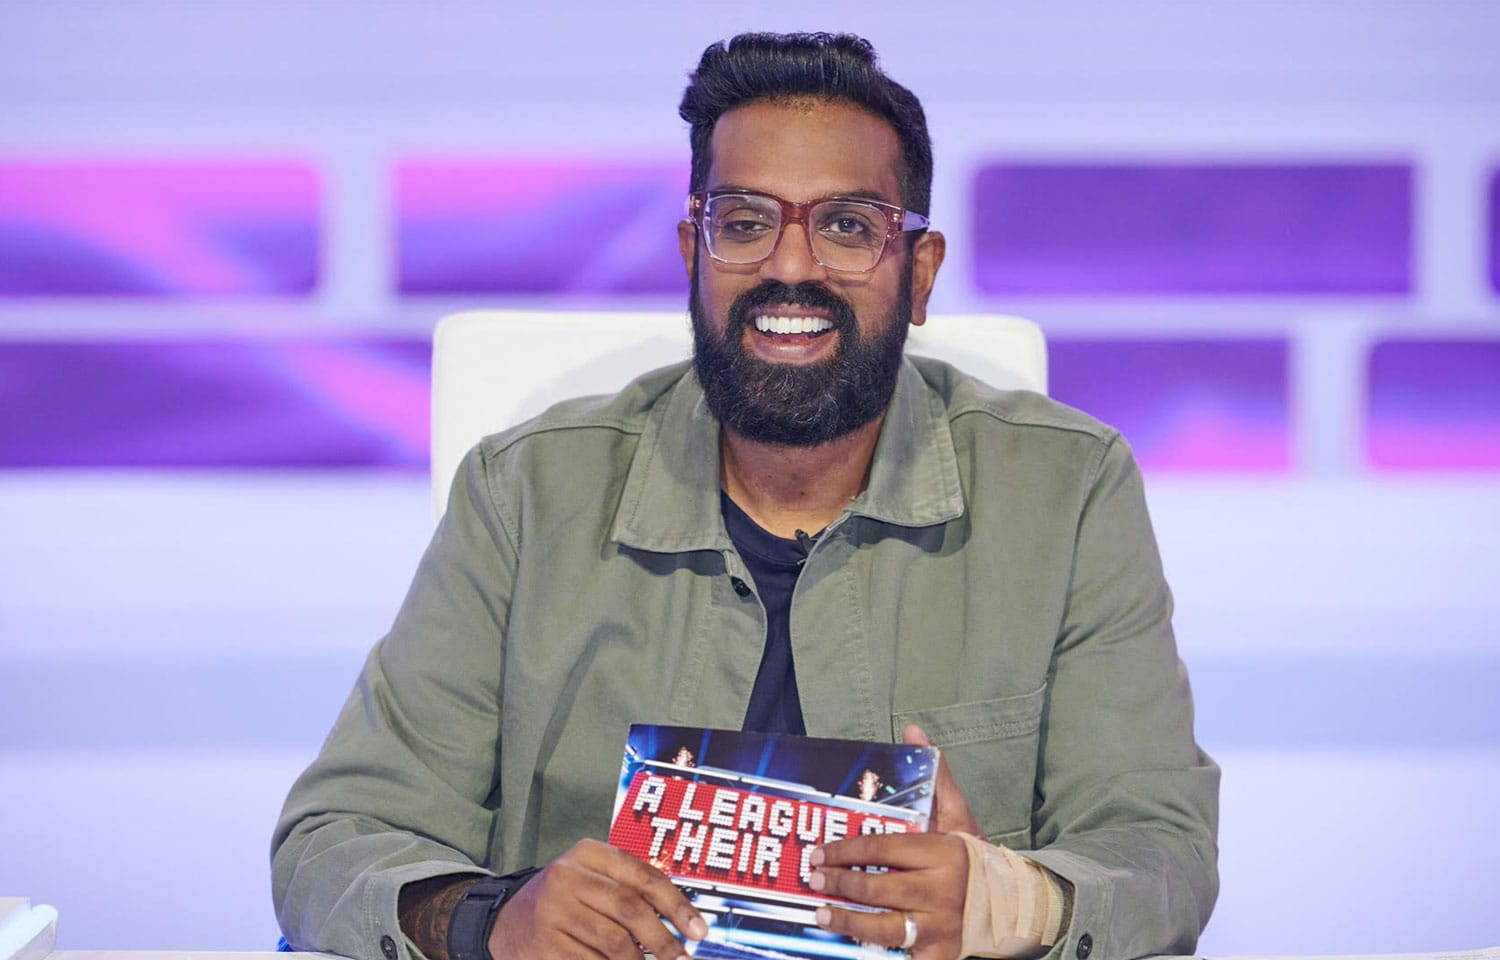 ROMESH TAKES OVER AS NEW HOST OF A LEAGUE OF THEIR OWN